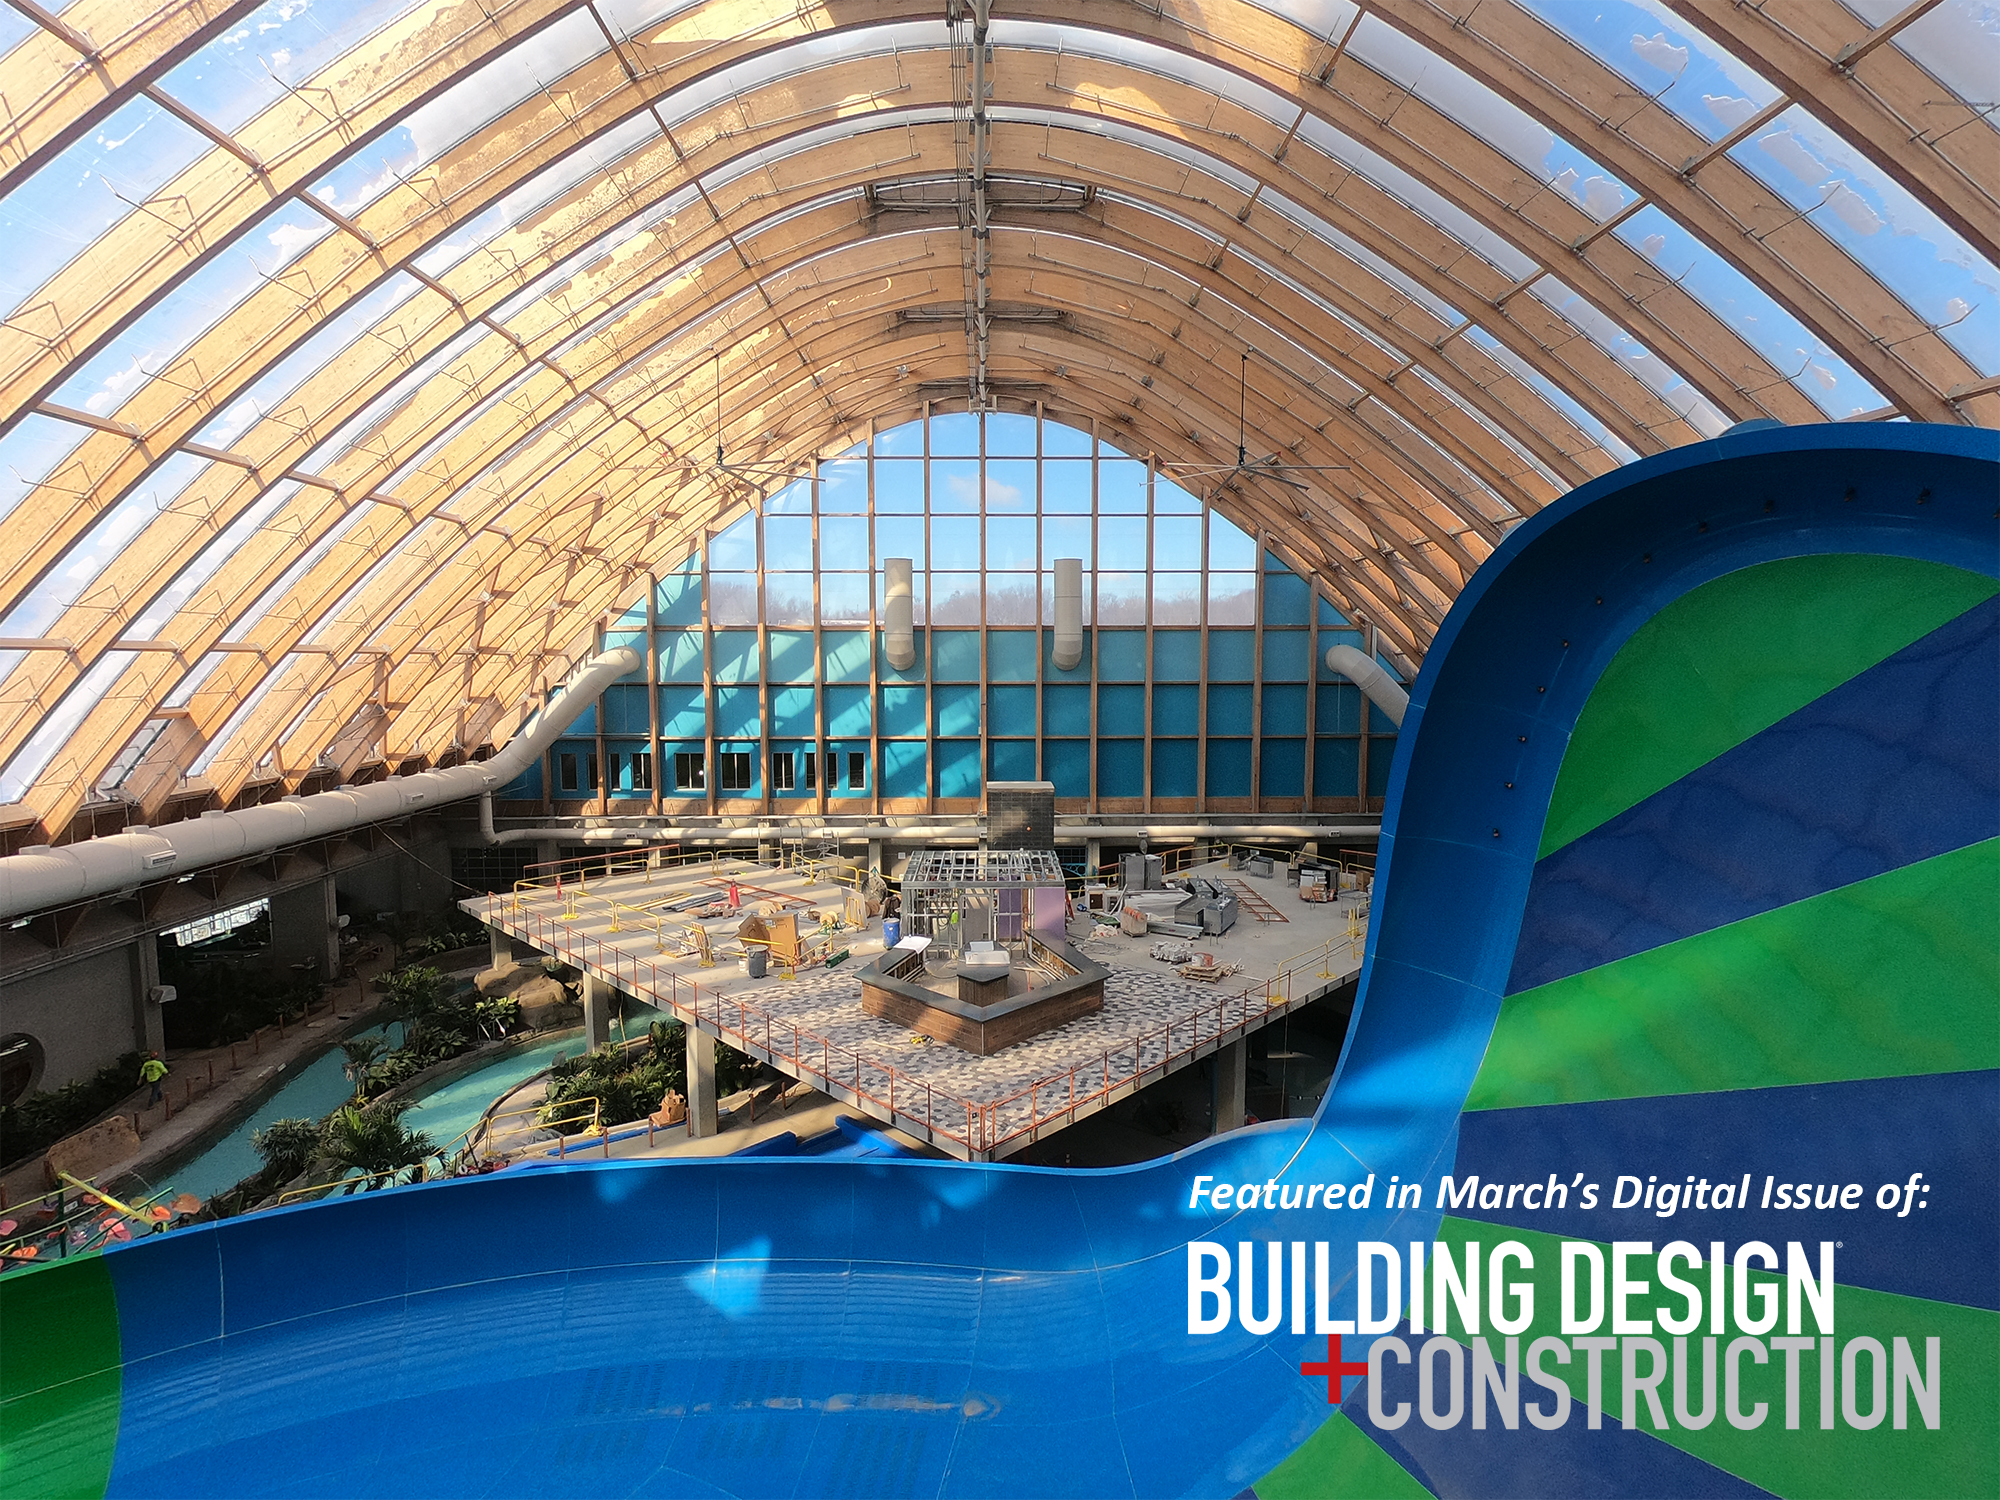 building design and construction kartrite indoor water park at resort